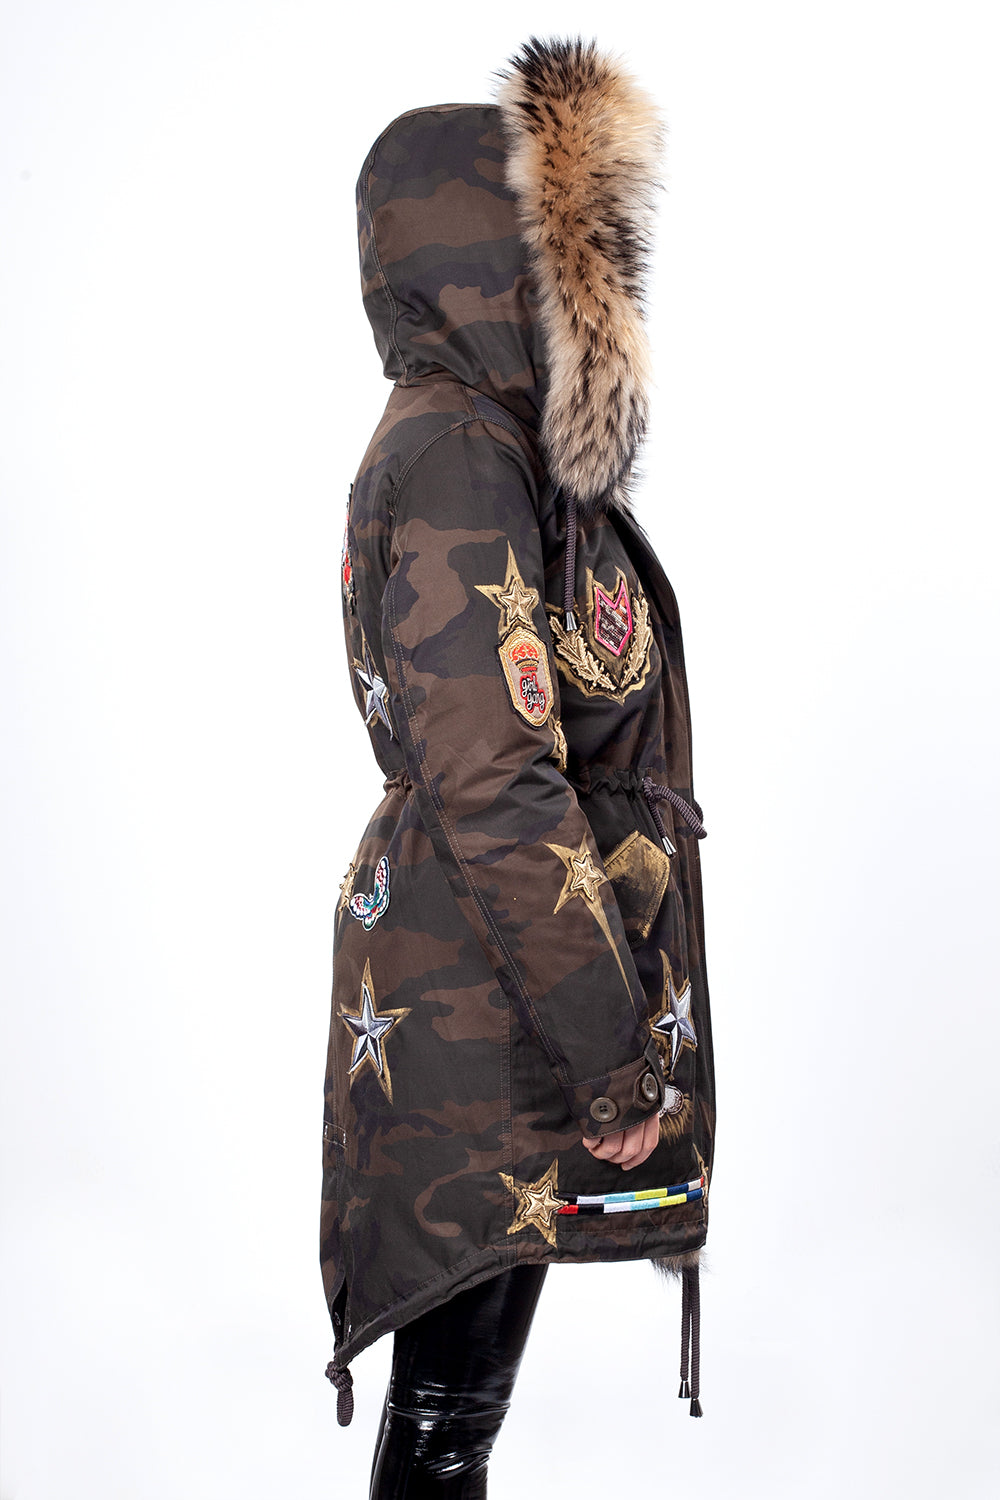 Khaki Camouflage Color Midi Parka Main Fabric is Waterproof / Raincoat Fabric With Finnraccoon